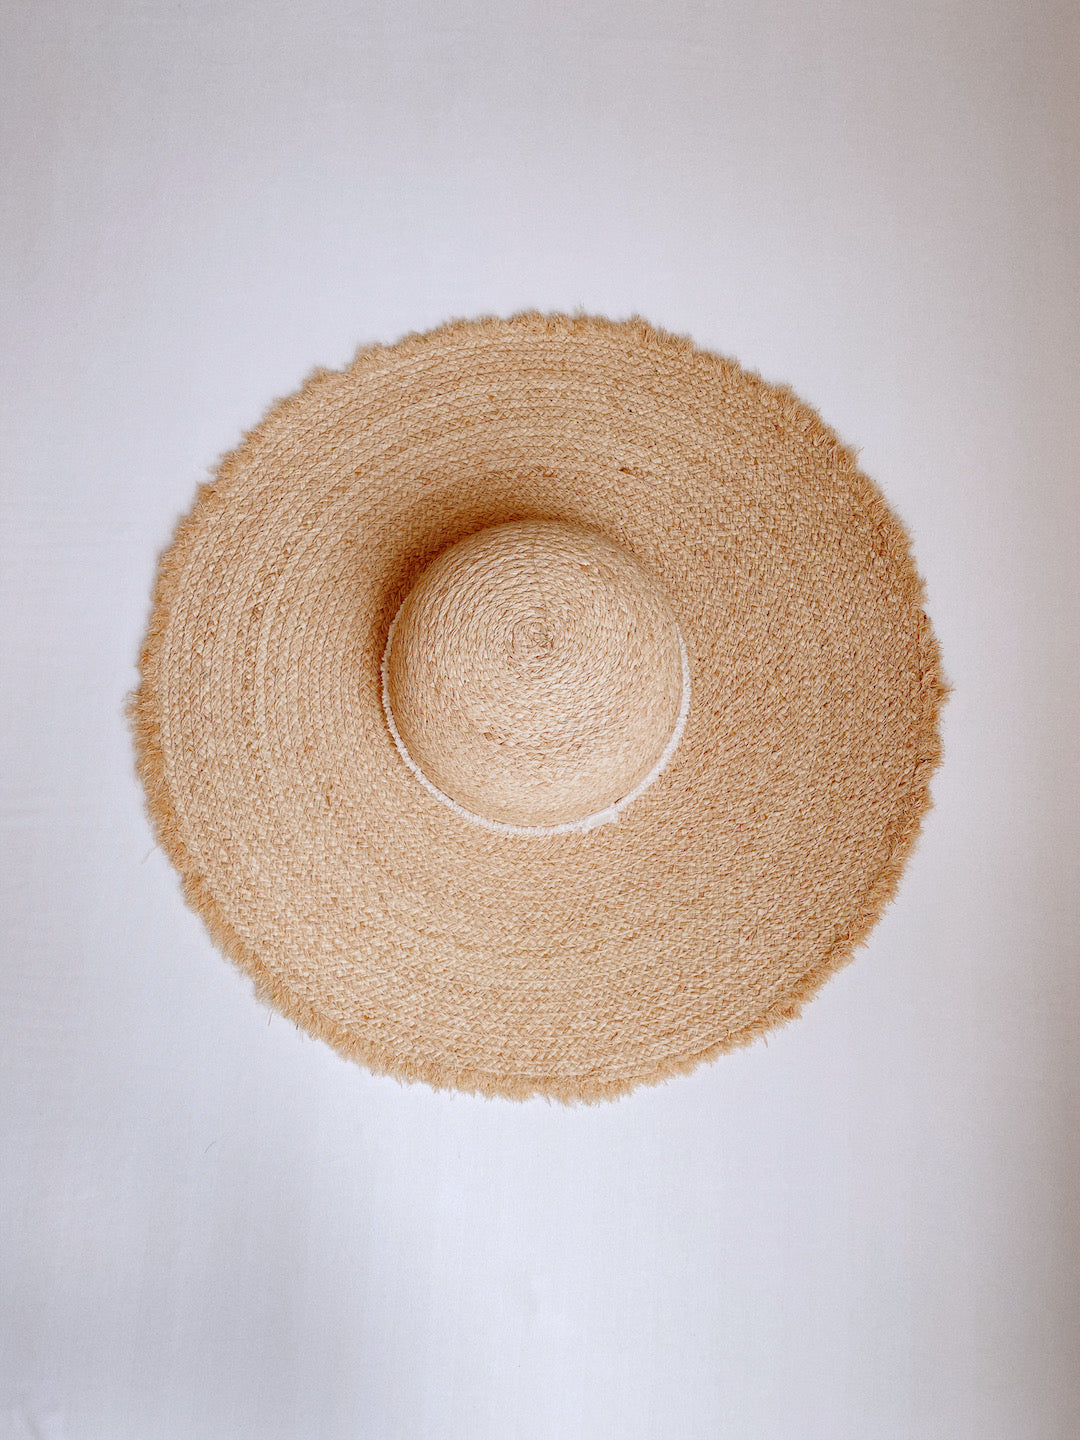 ROSE STRAW HAT SALE - Lurelly